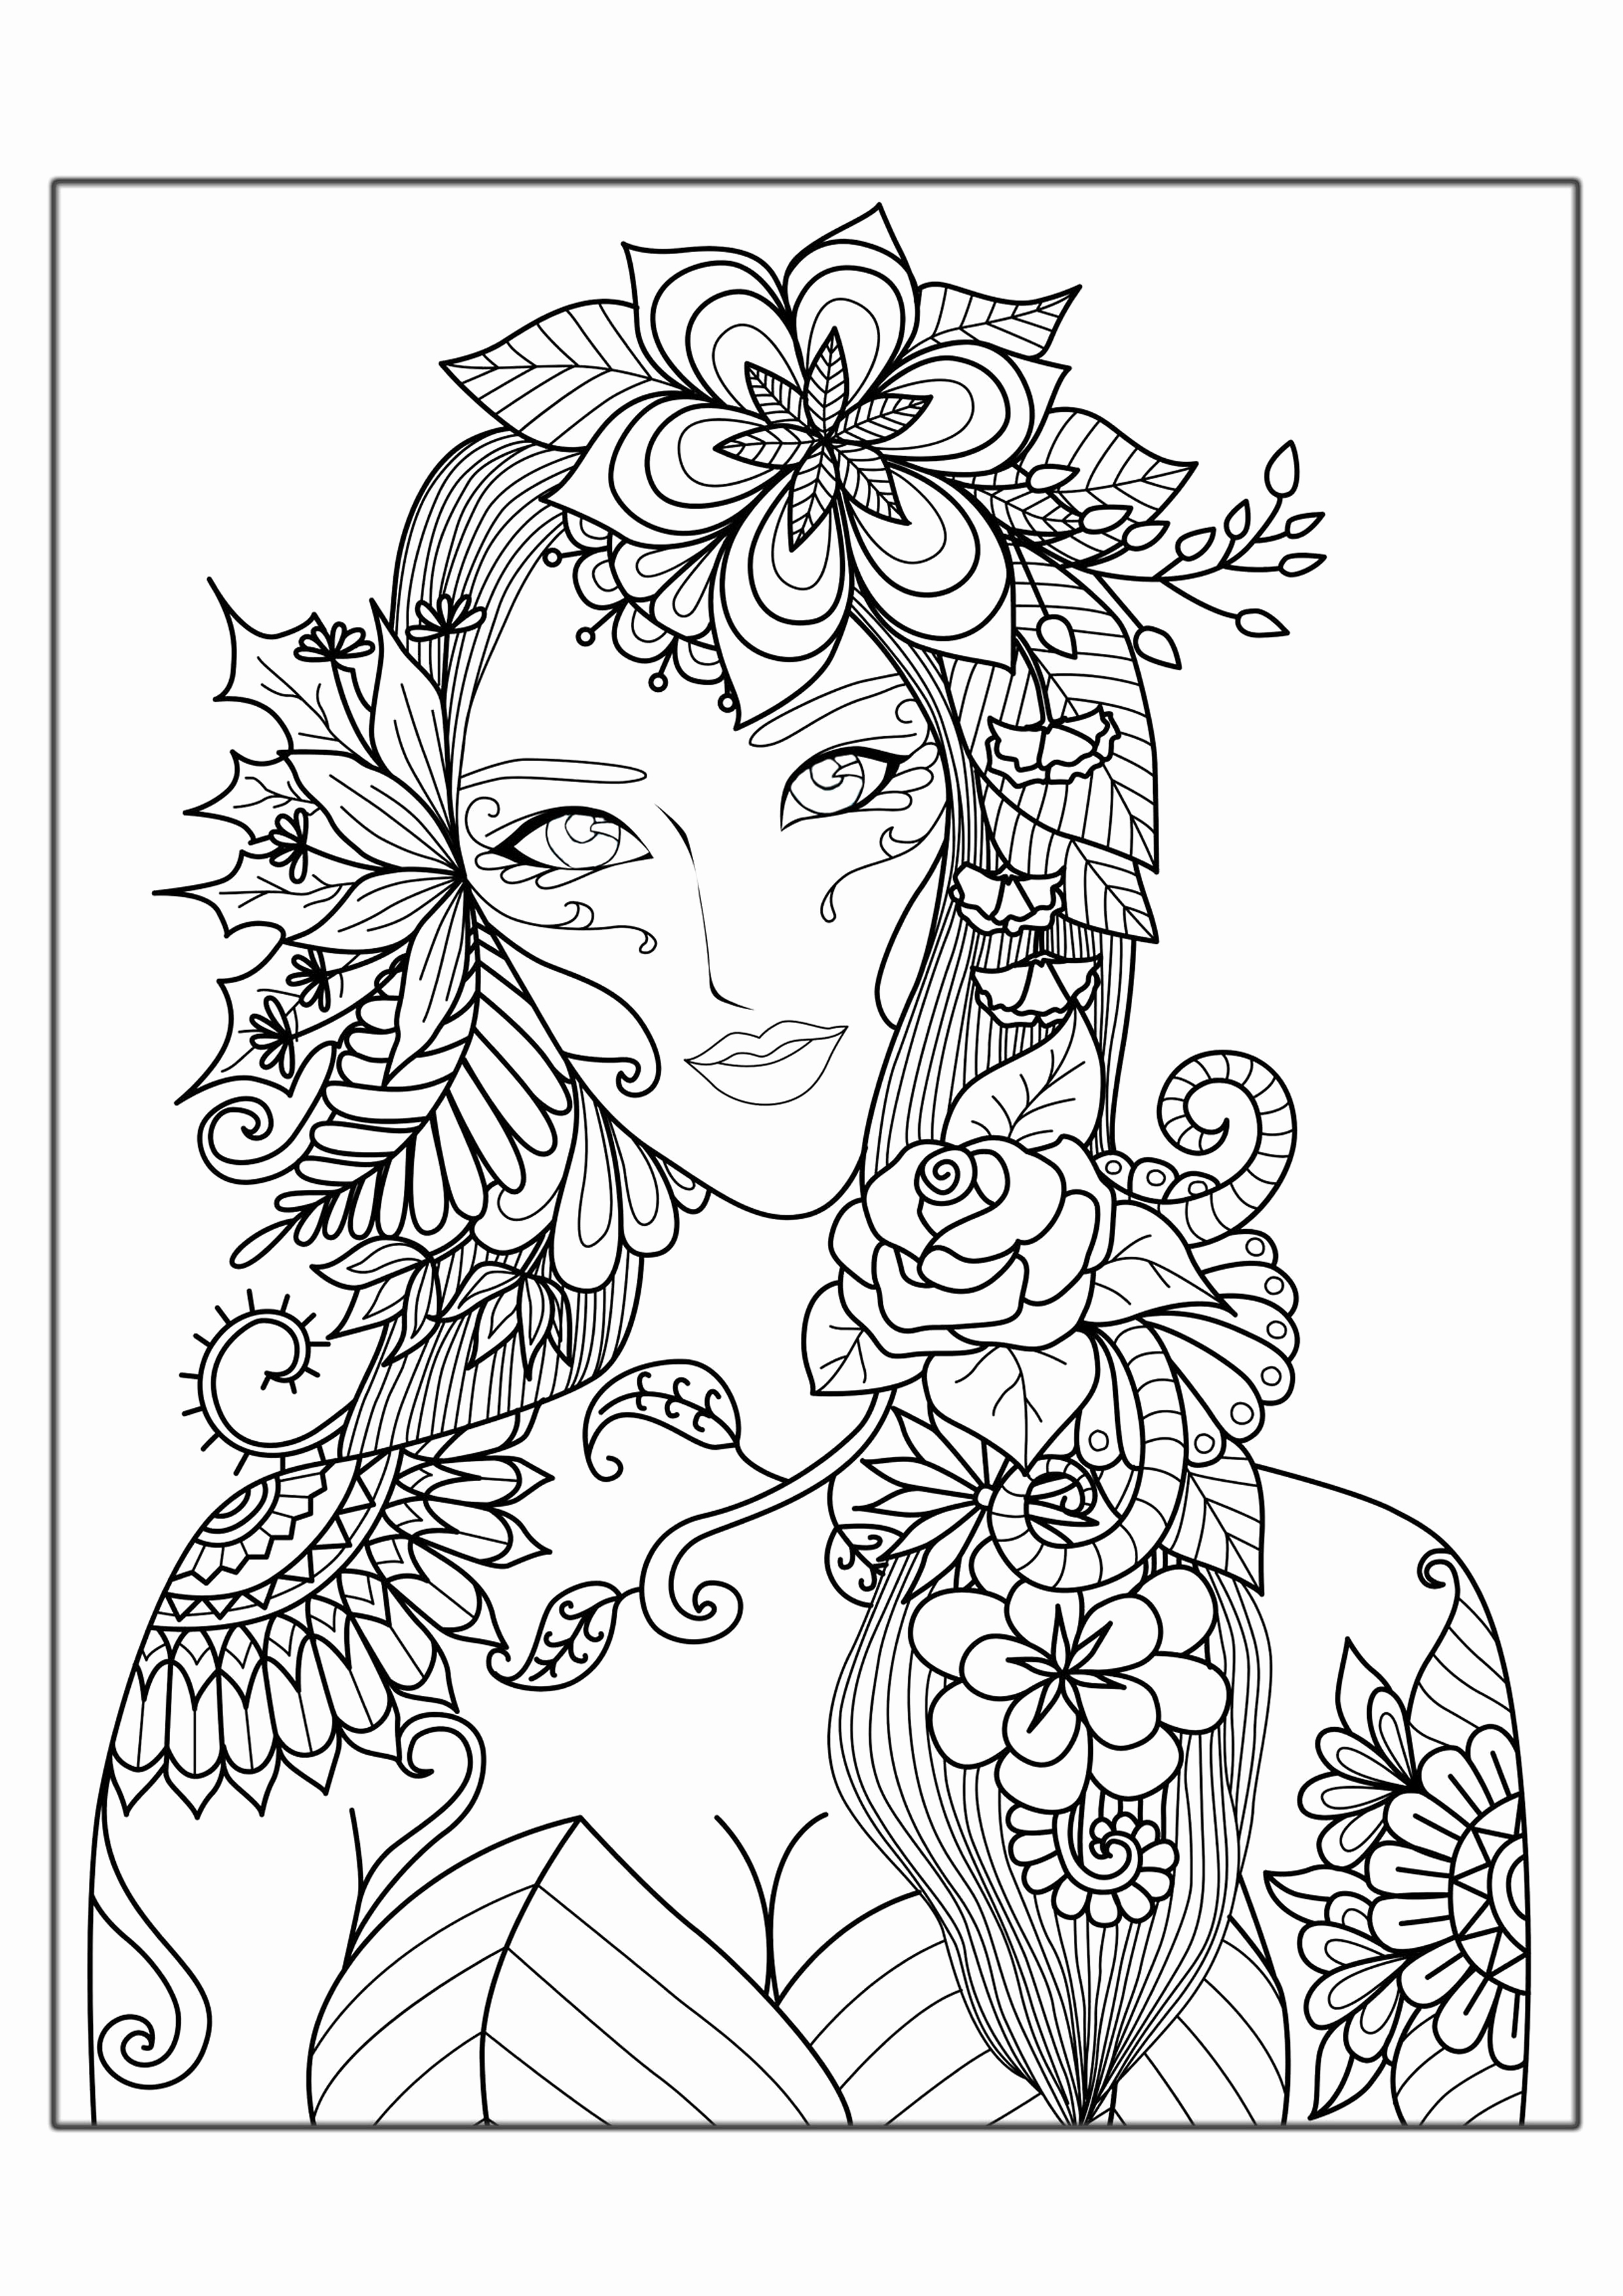 2480x3508 Detailed Coloring Pages To Download And Print For Free Within